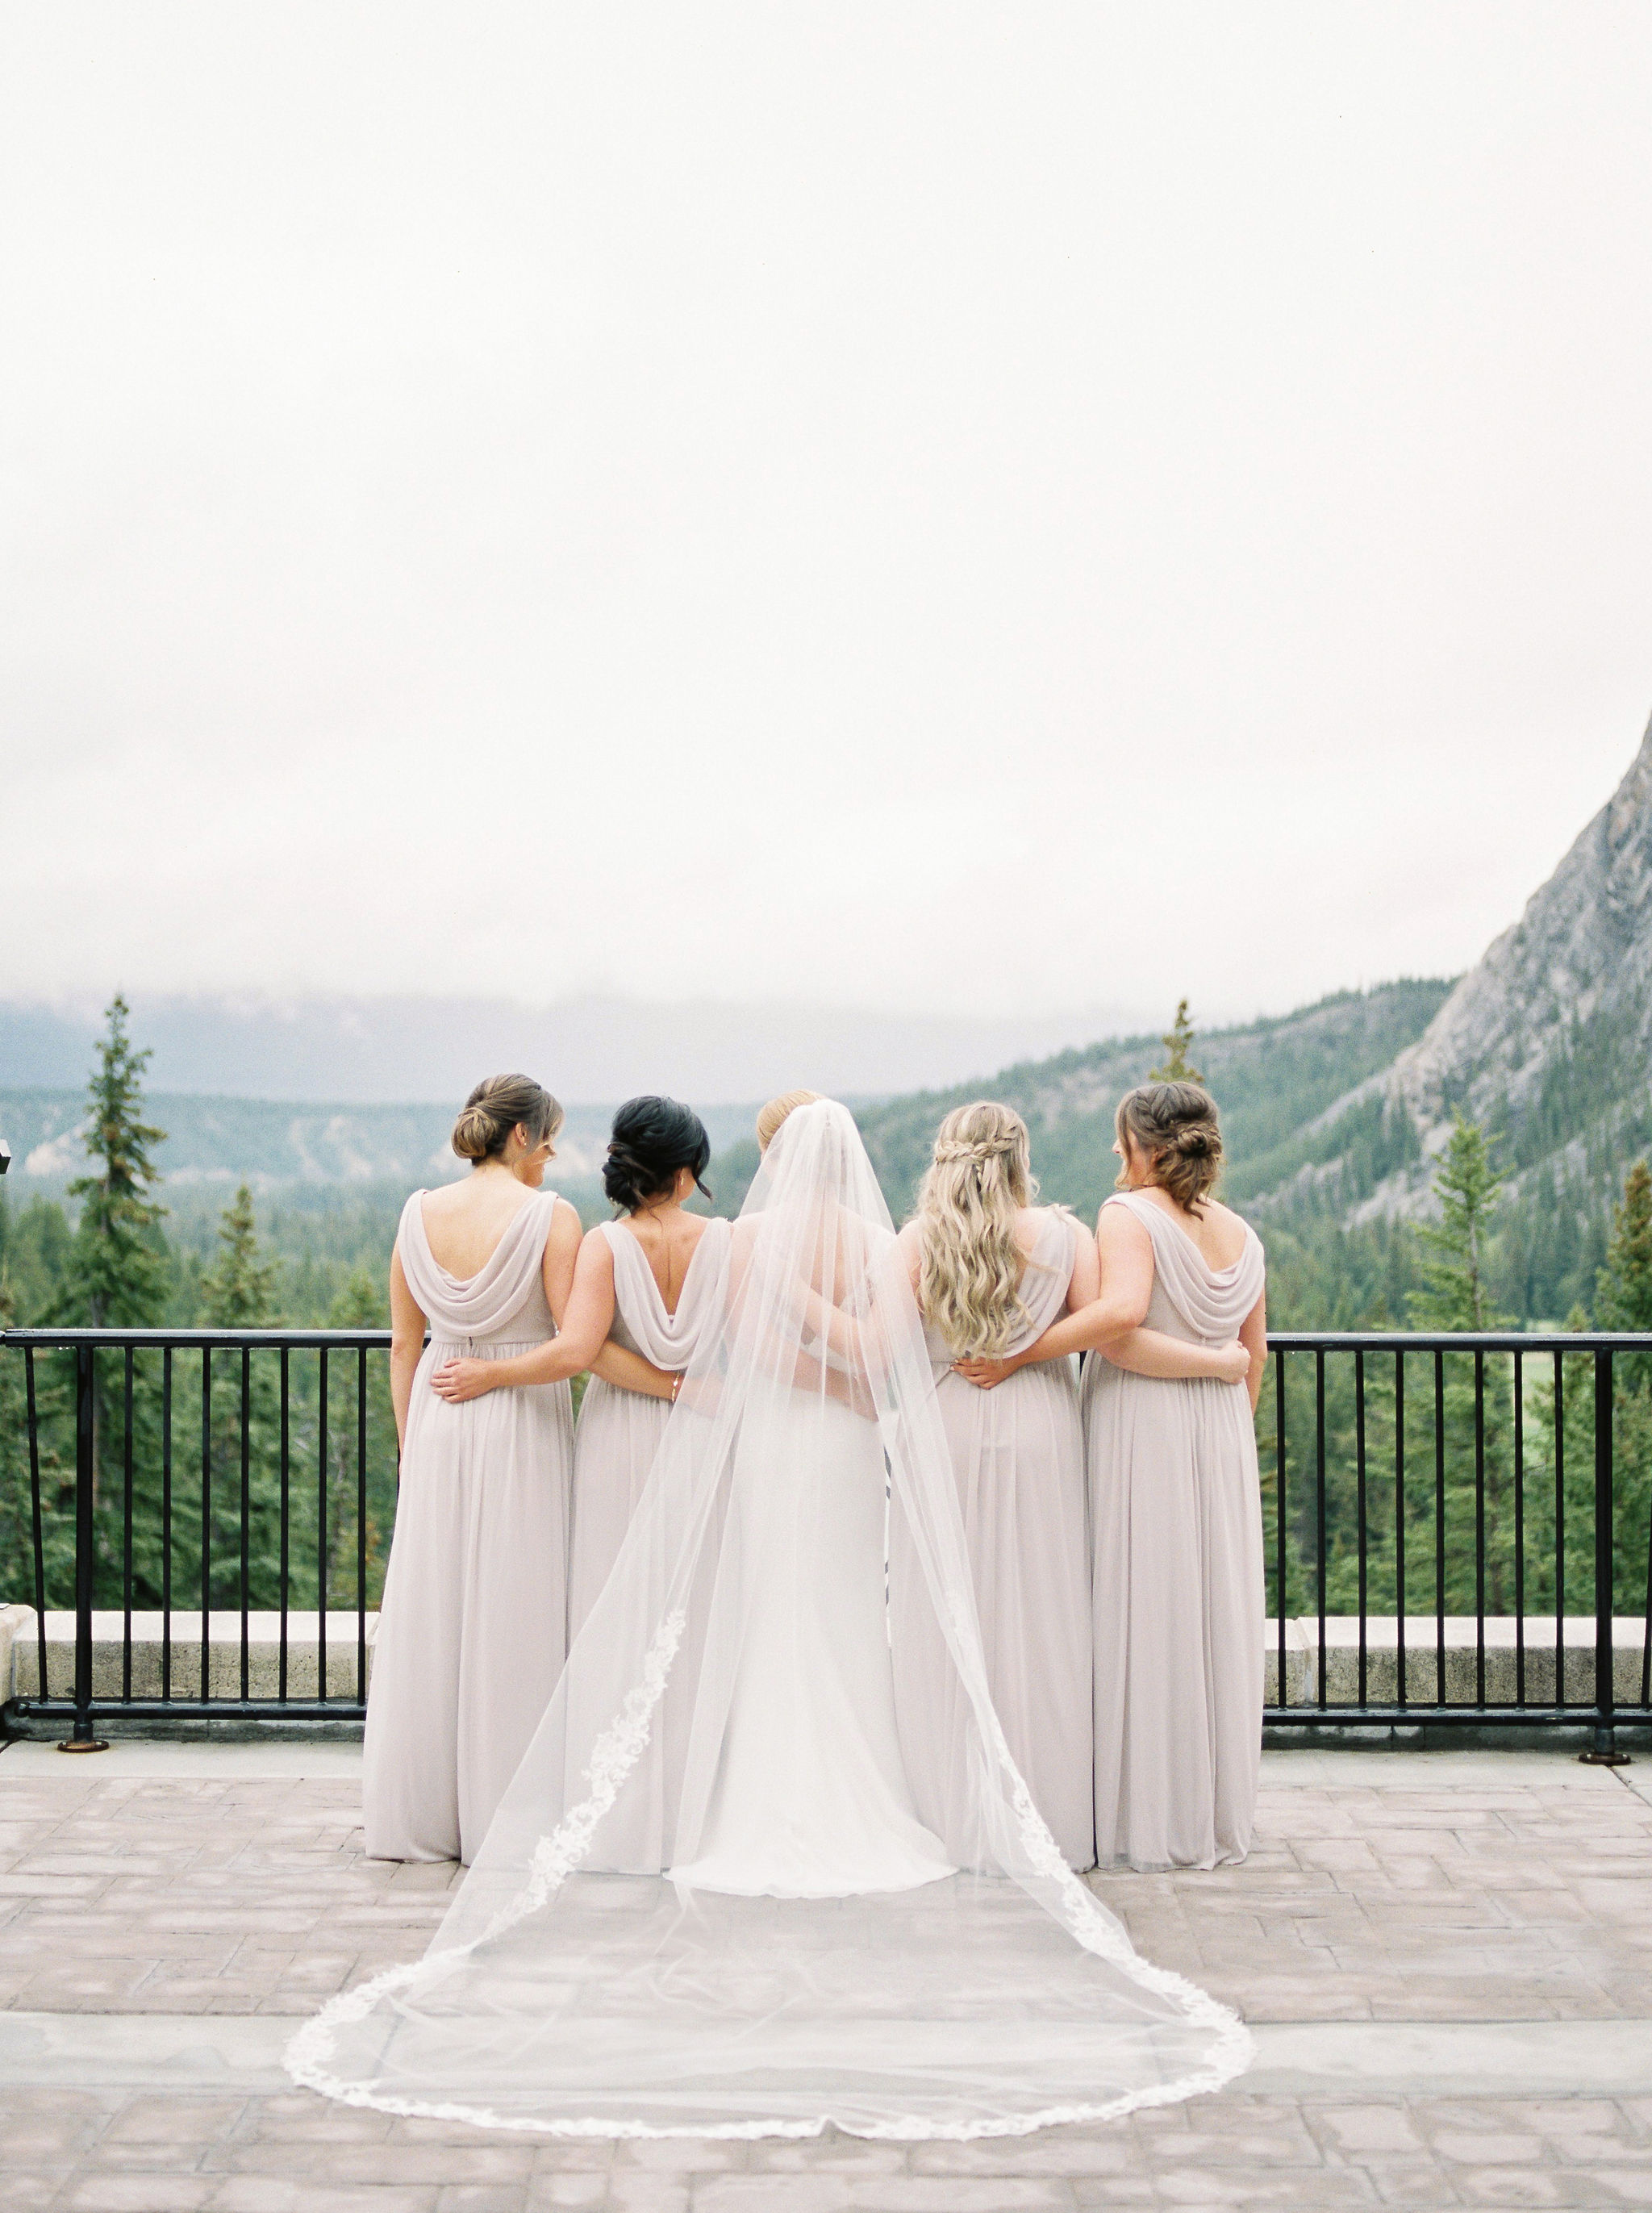 7 Tips for Choosing Your Wedding Photographer - Tips from the Pros - Kristyn Harder Photography on the Bronte Bride Blog